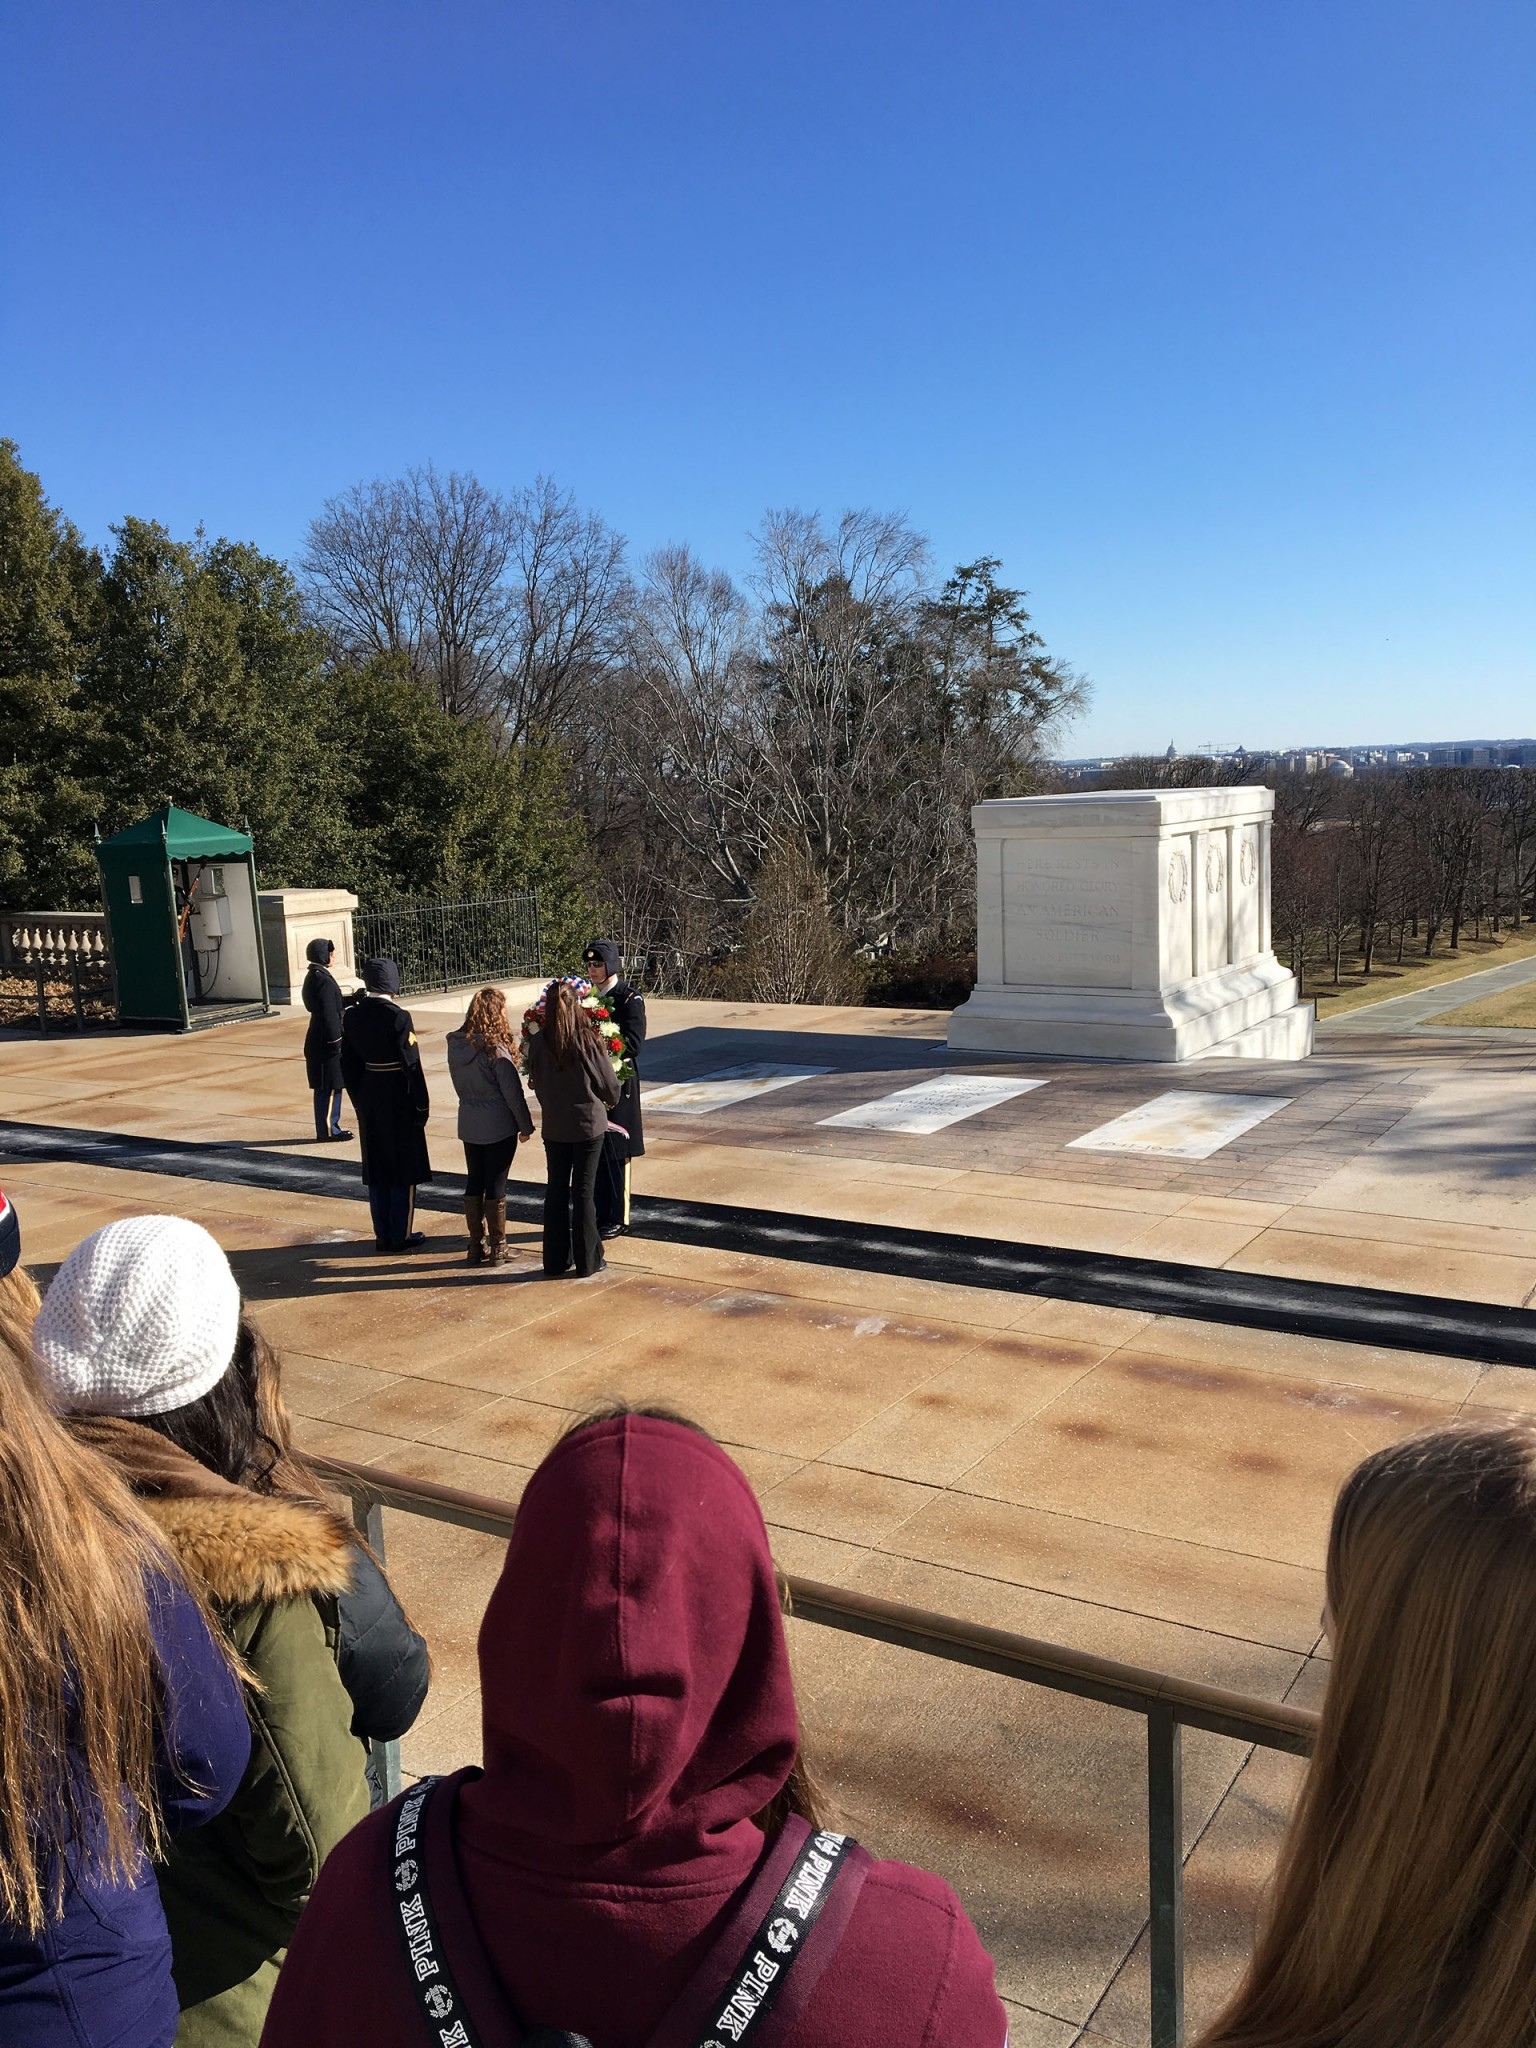 Kelly Rehm and Brianna Bean laid a wreath at the Tomb of the Unknown Soldier at Arlington National Cemetery.